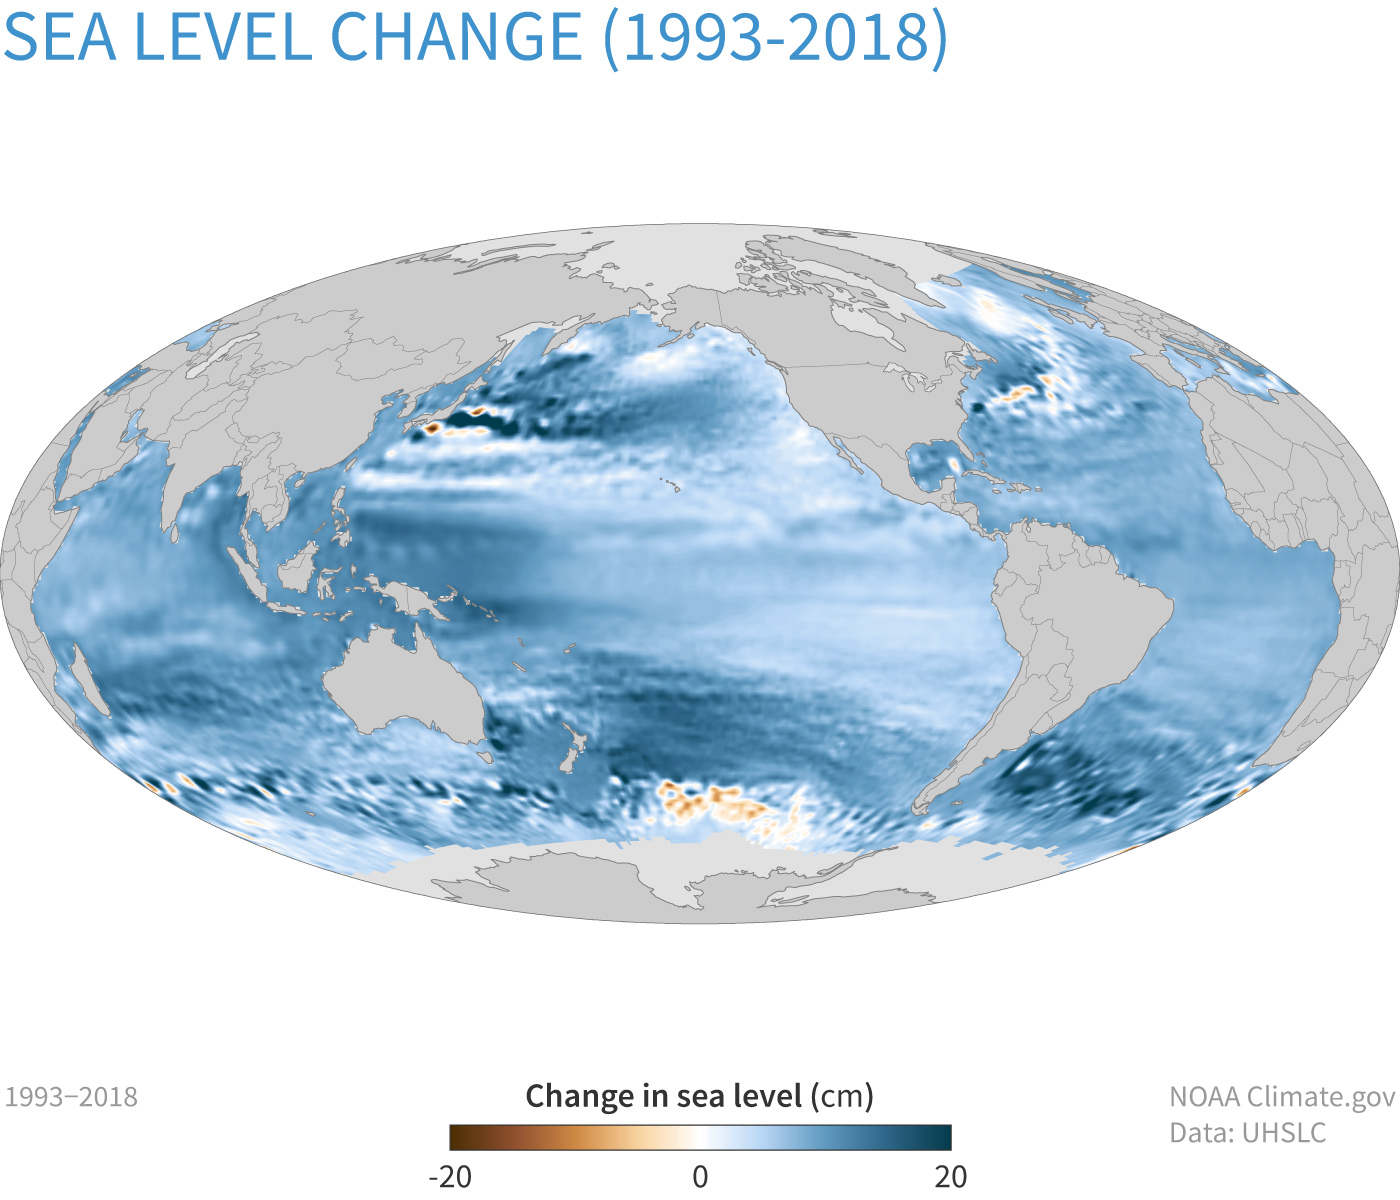 Map of global sea level change between 1993 and 2018, with increases shown in shades of blue, and decreases shown in shades of brown.